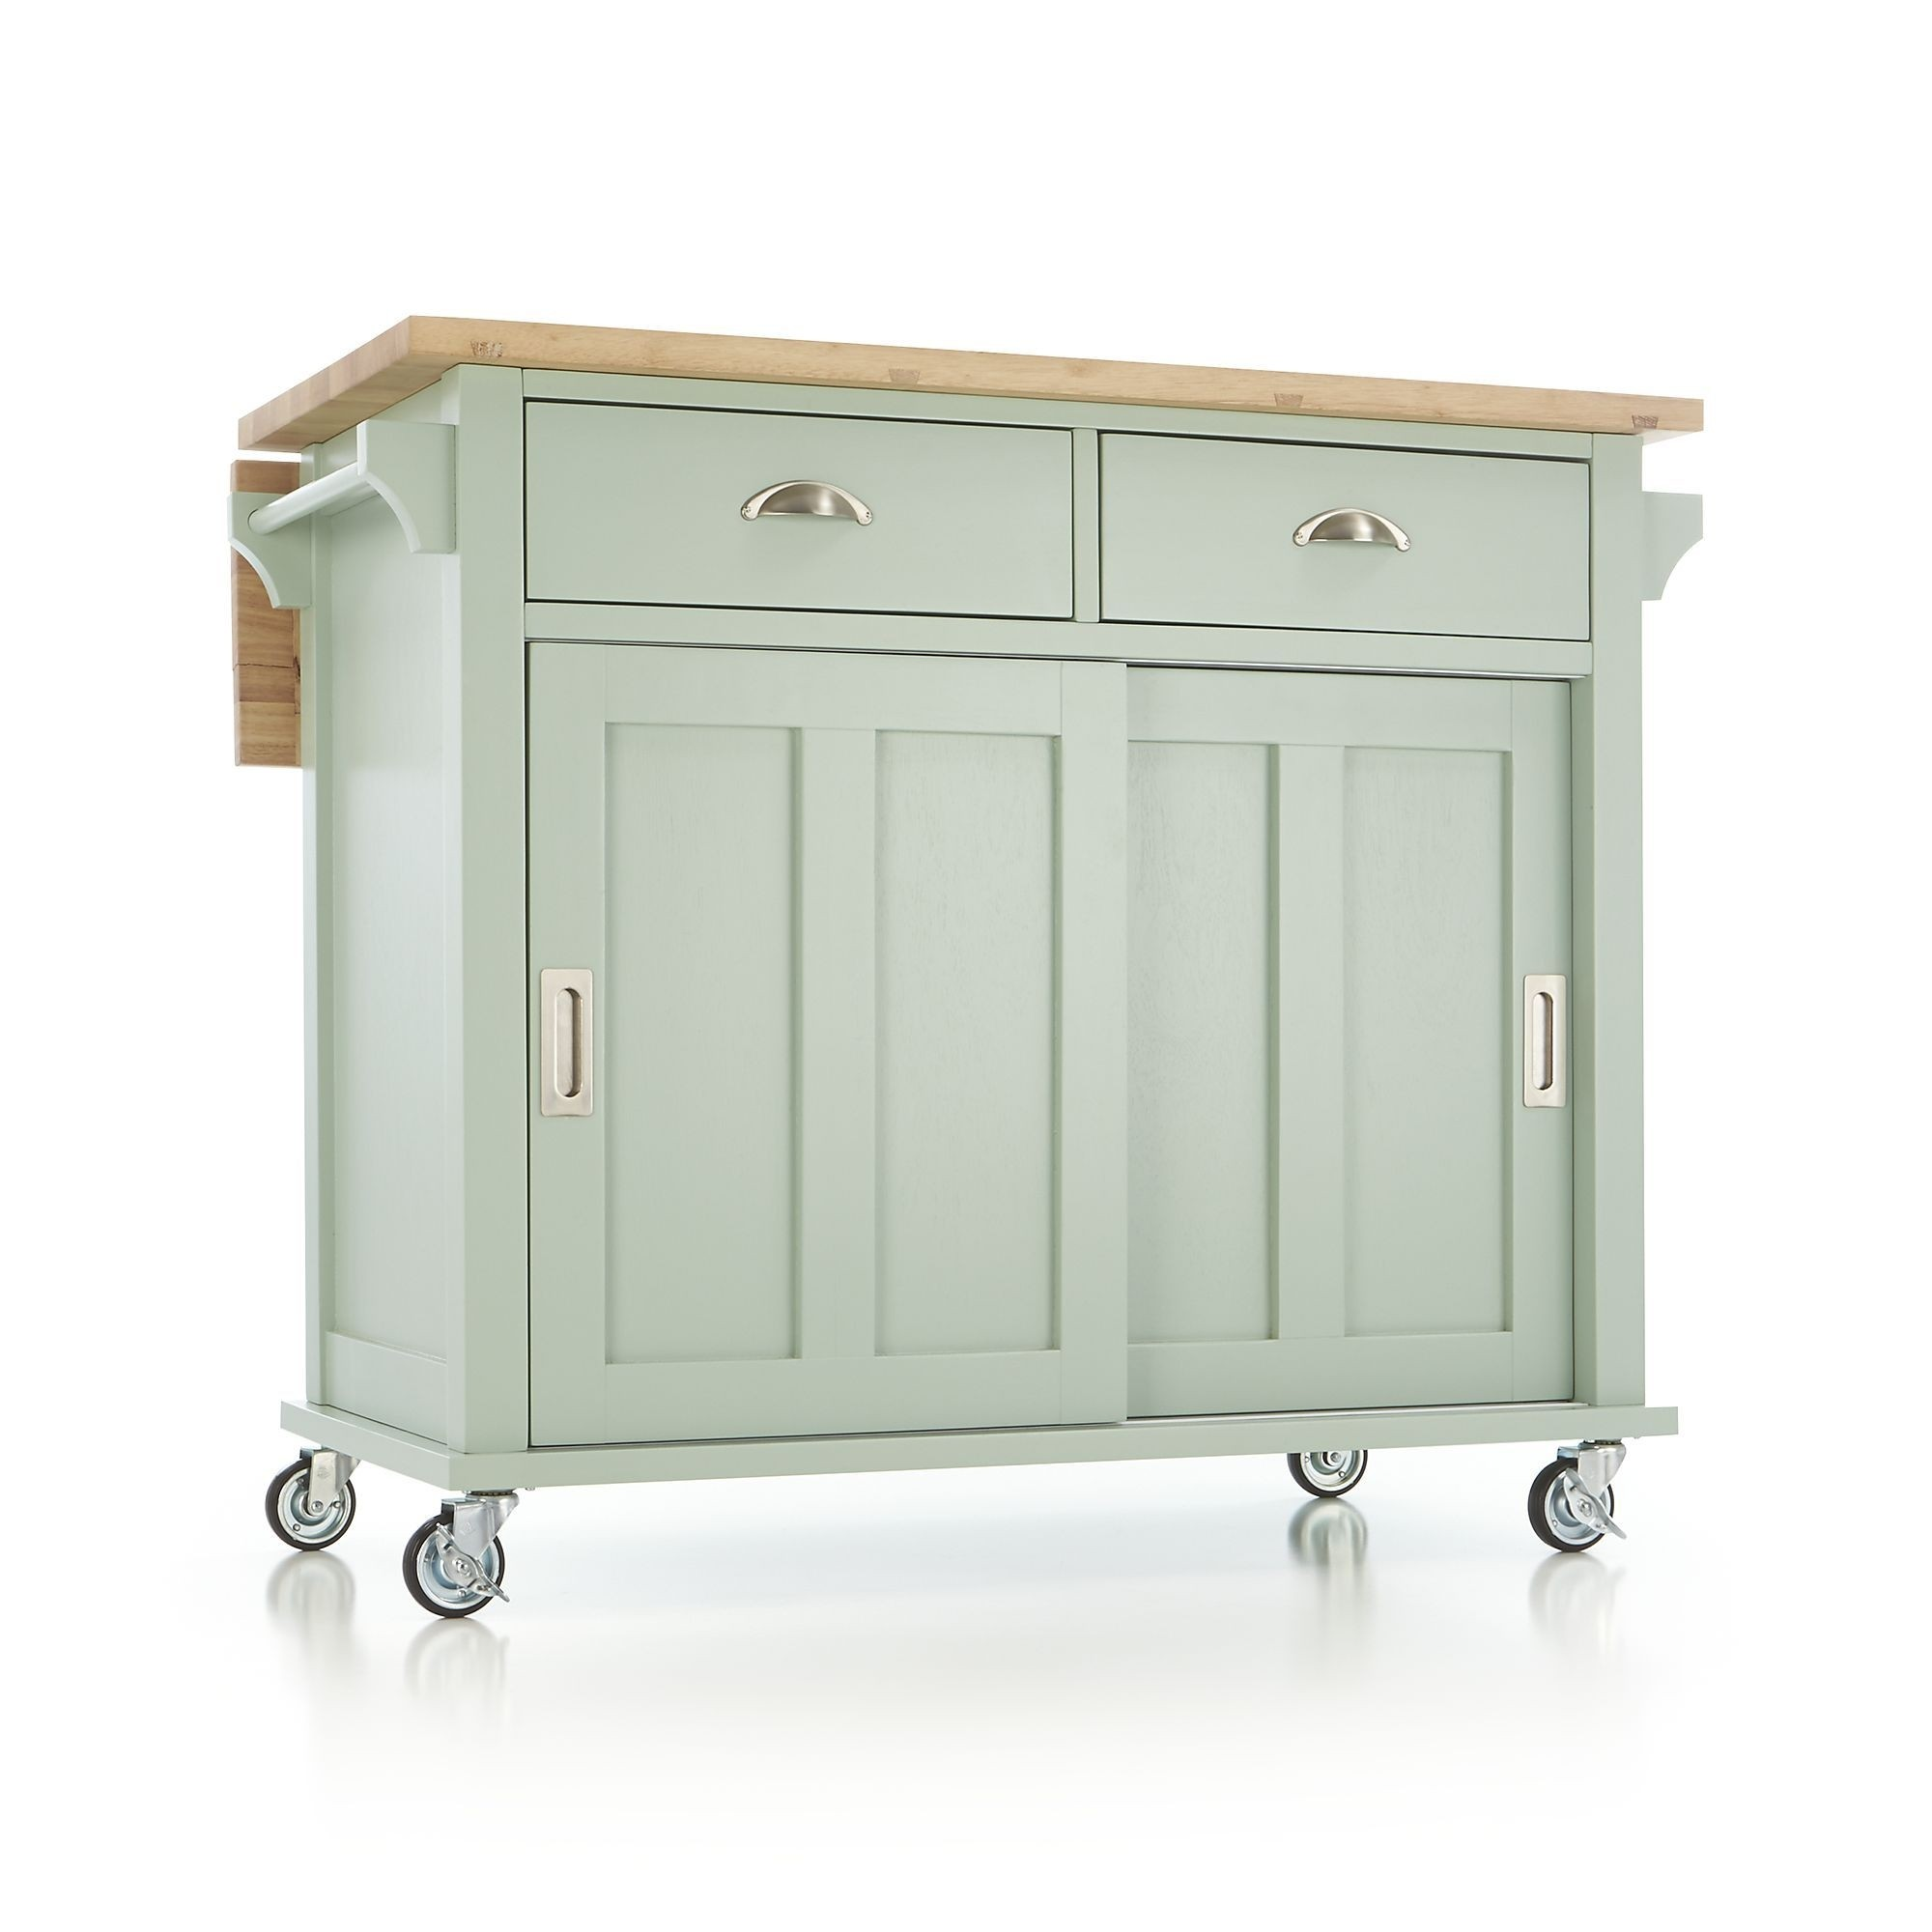 wheeled kitchen island roll towels islands on casters ideas foter wheels with seating